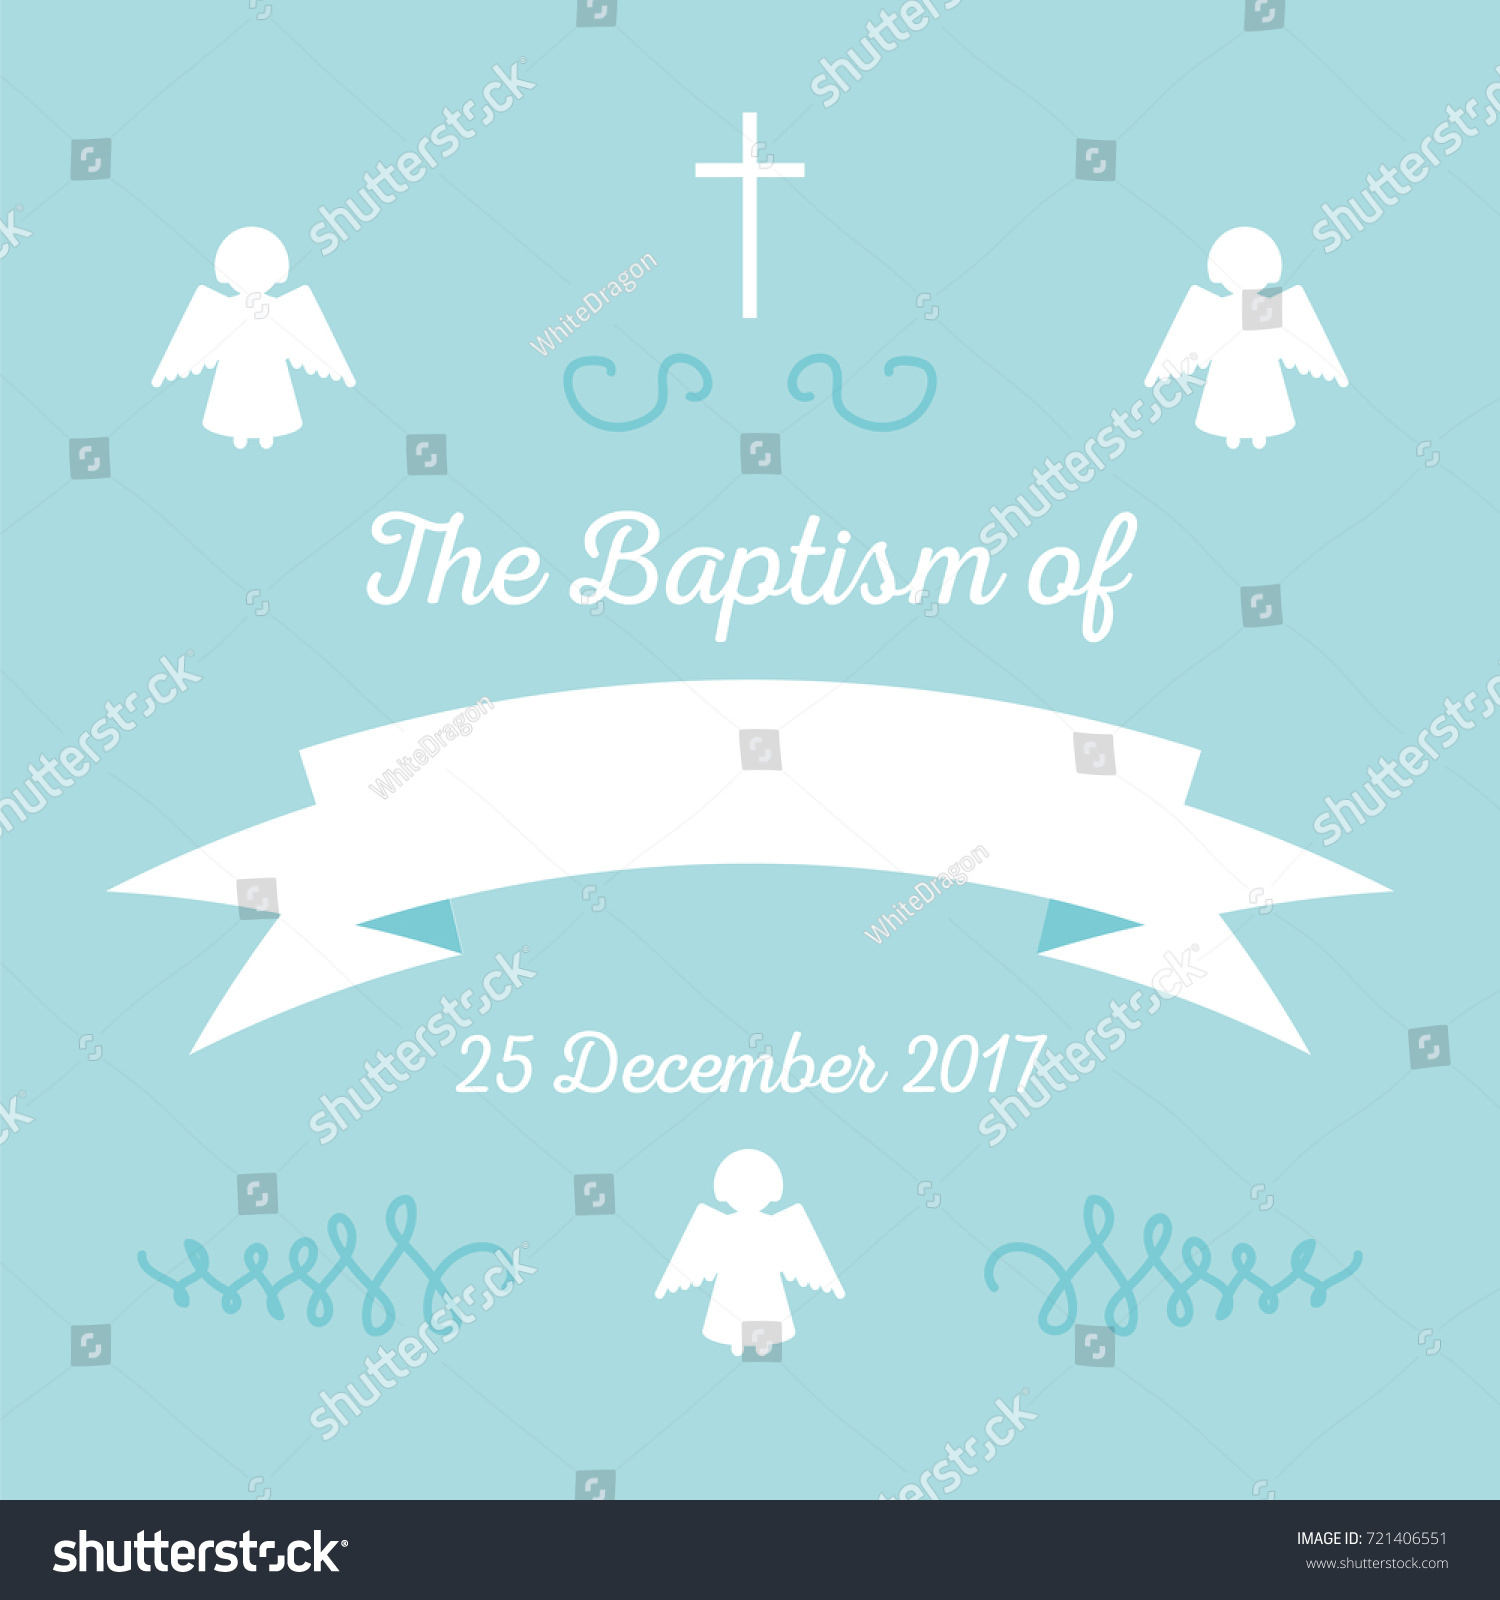 Baptism Invitation Card Template Stock Vector Stock Vector (Royalty Free)  721406551